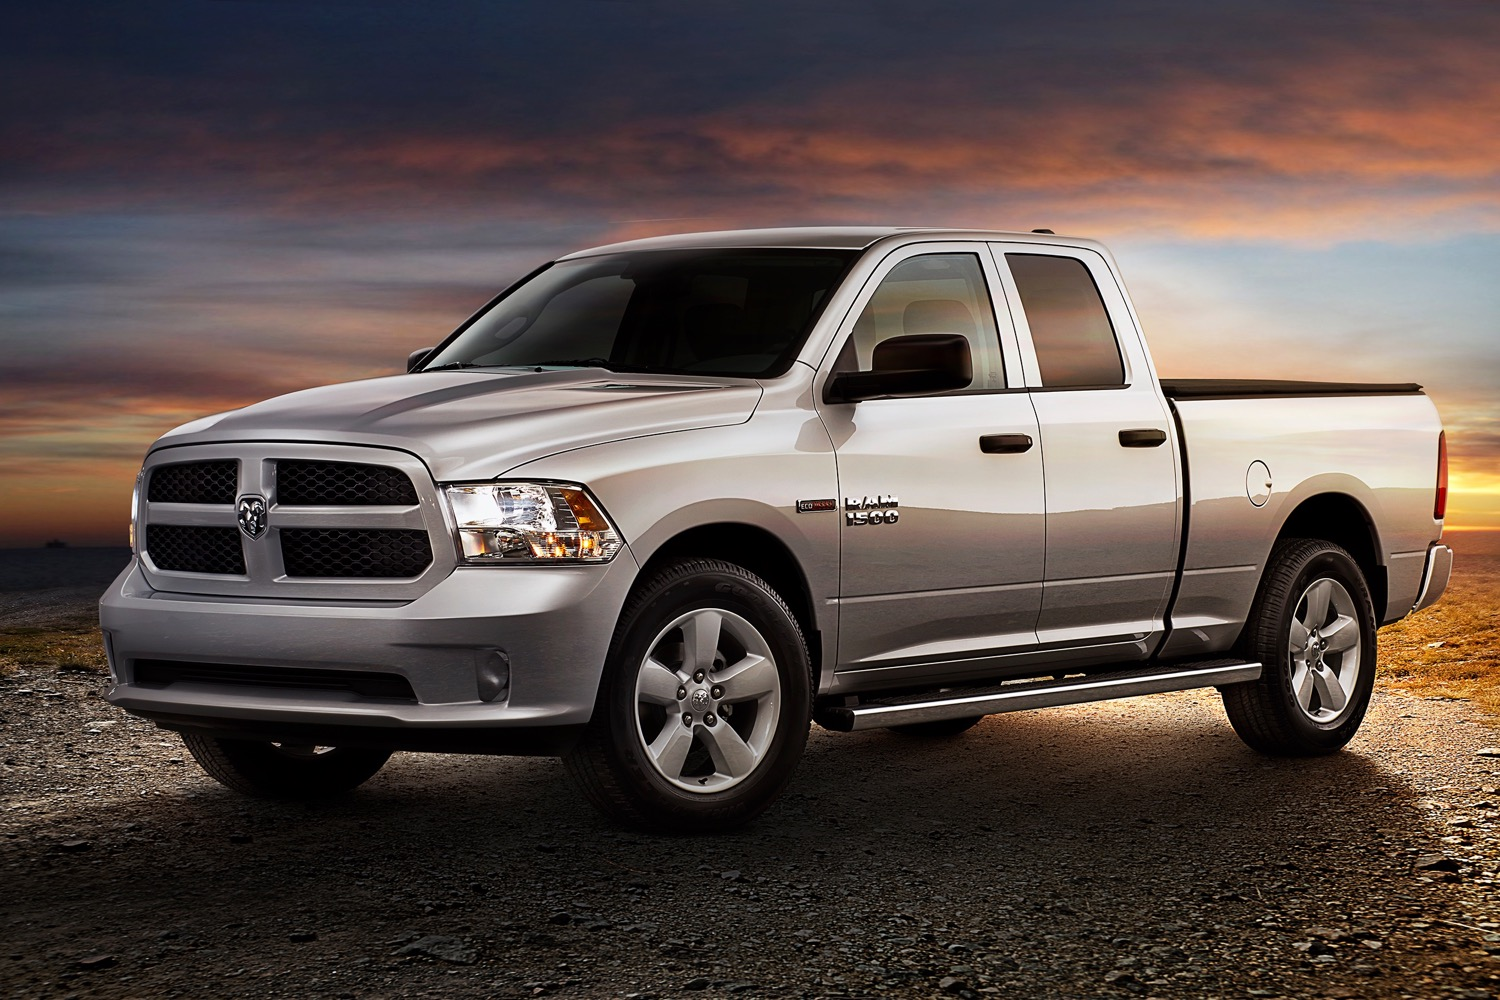 2016 Ram 1500 >> 2016 Ram 1500 Review Ratings Specs Prices And Photos